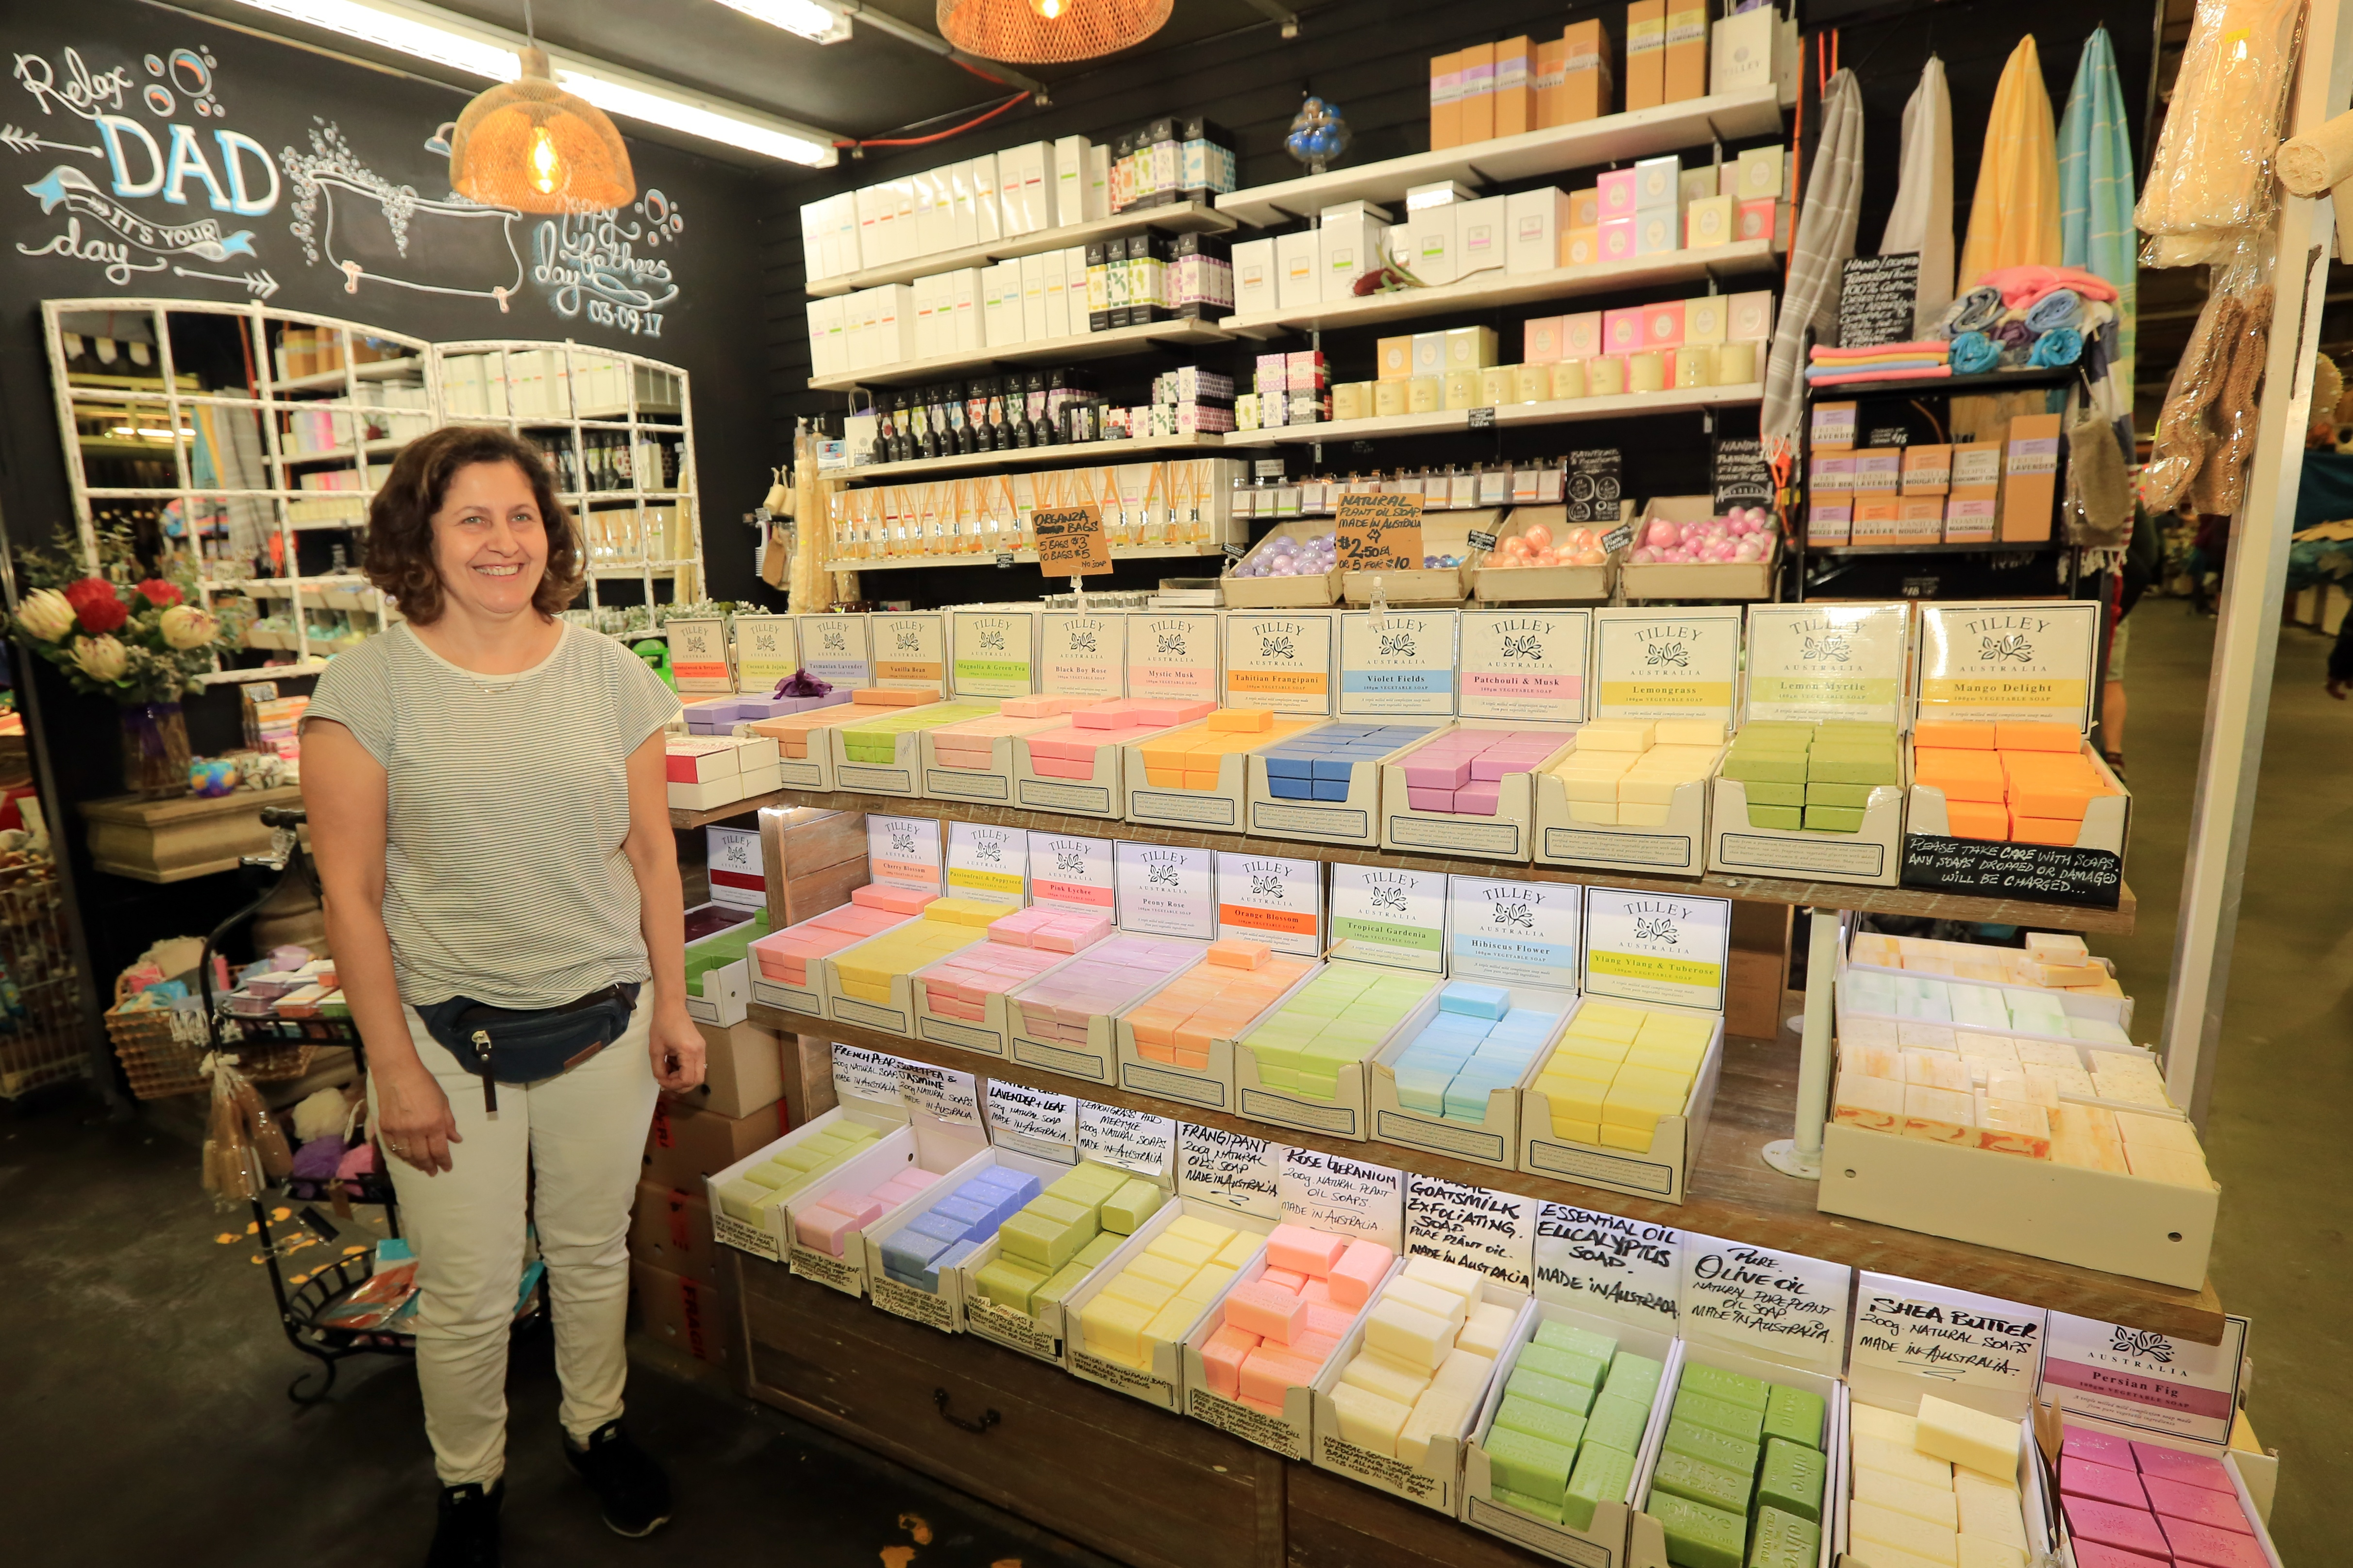 Become a Stallholder at Paddy's Markets